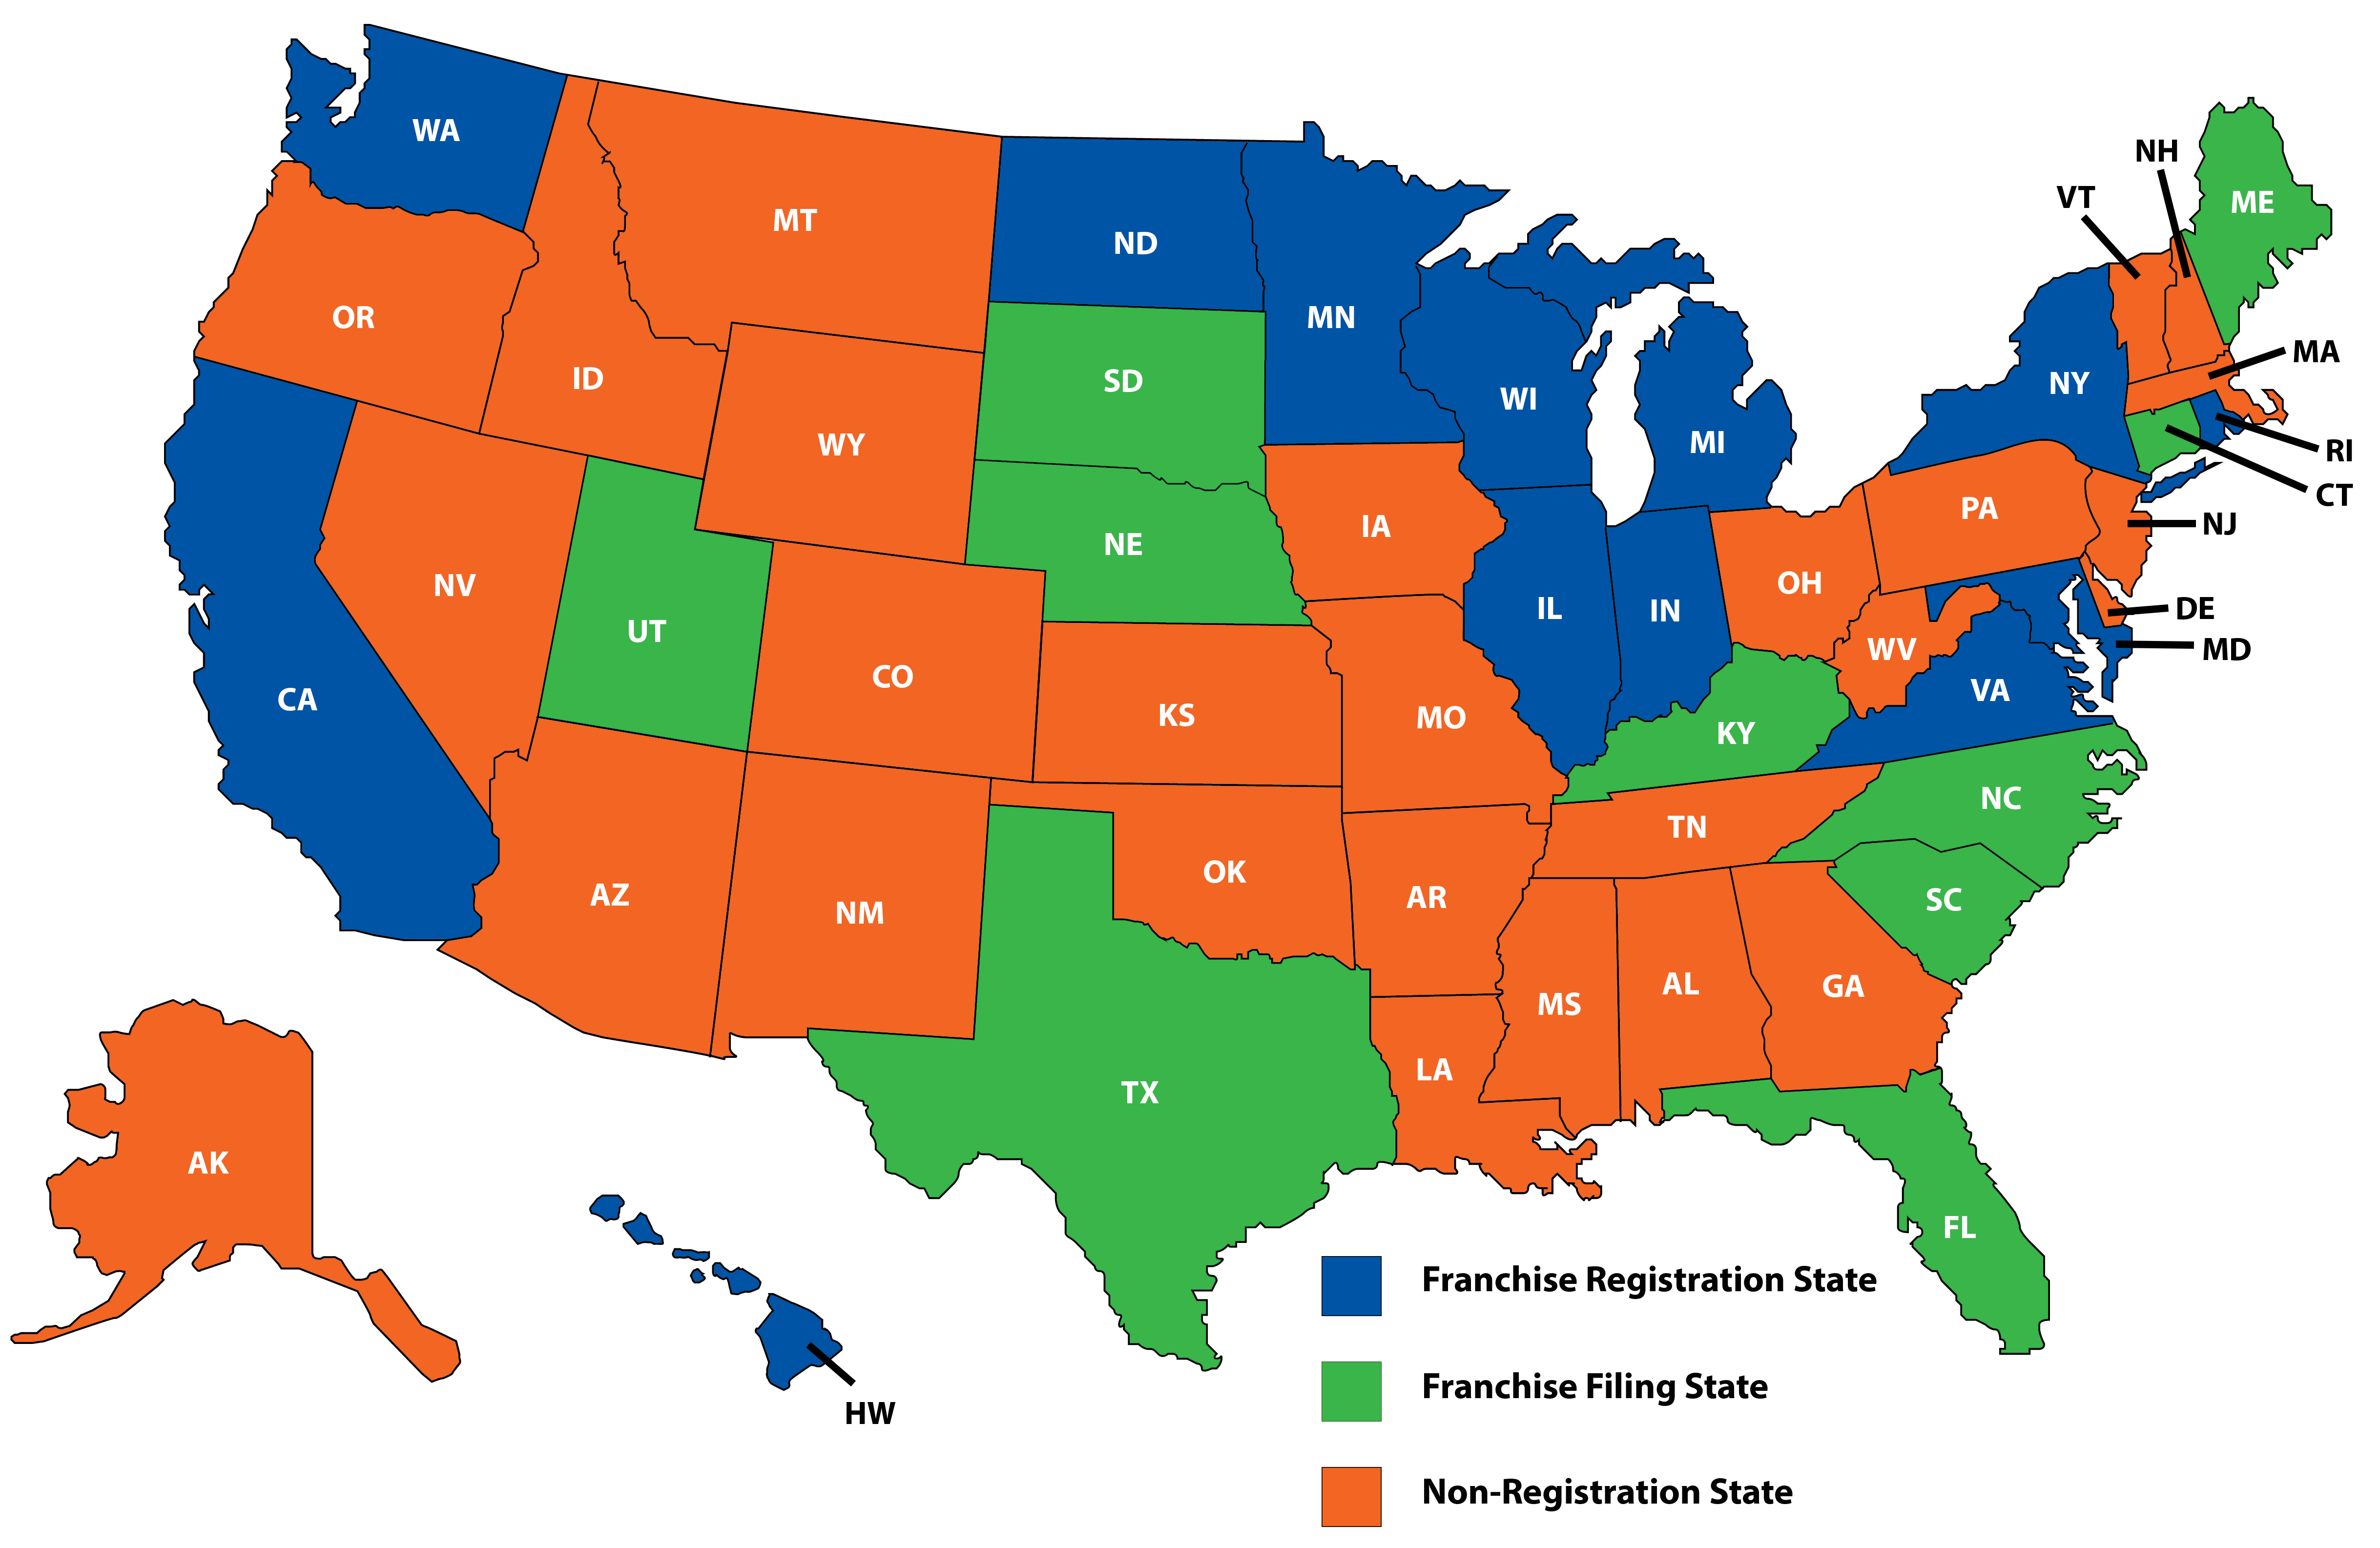 U.S. map showing the franchising category for each state